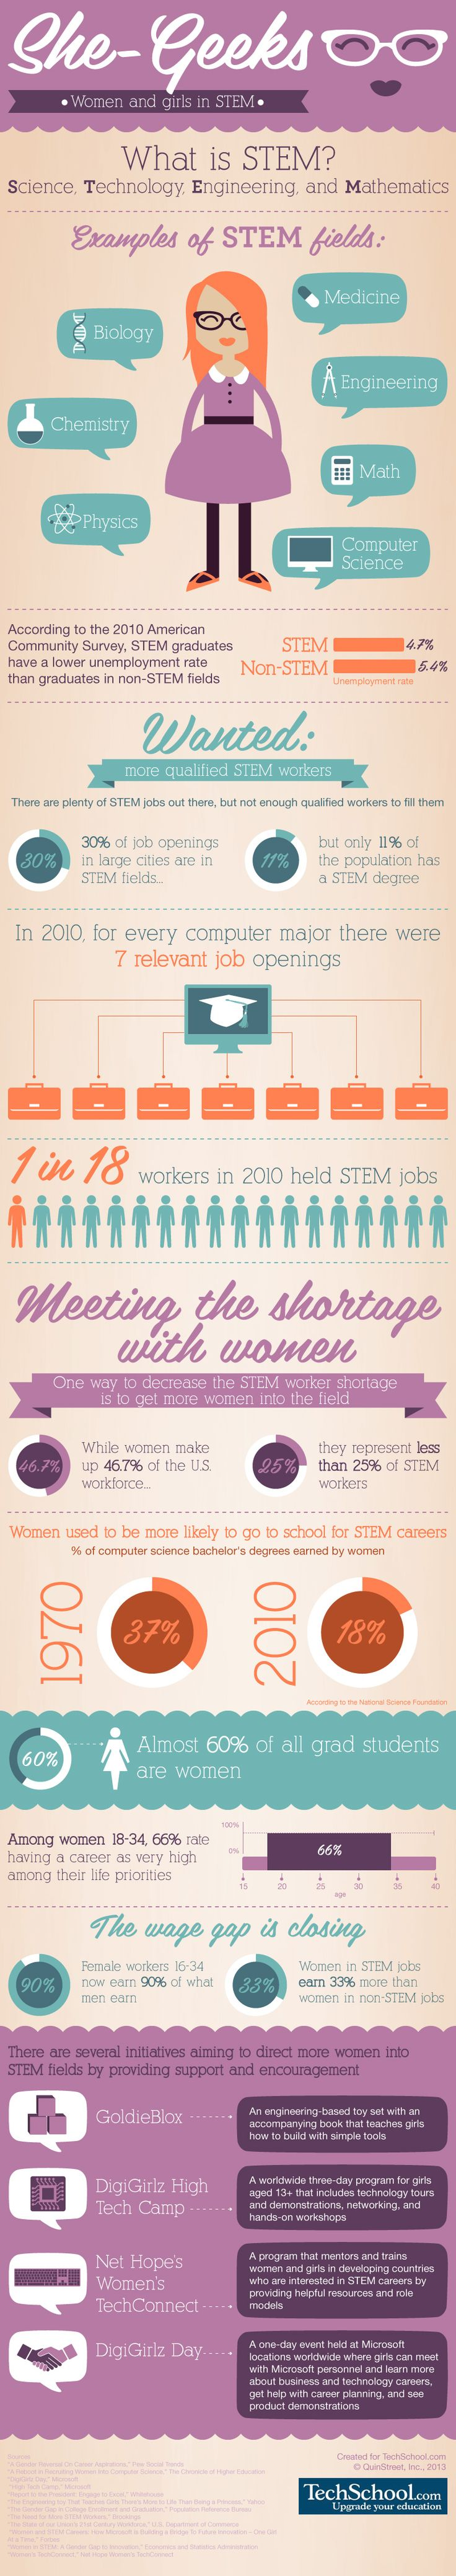 Women and Girls in STEM (Science, Technology, Engineering & Mathematics)